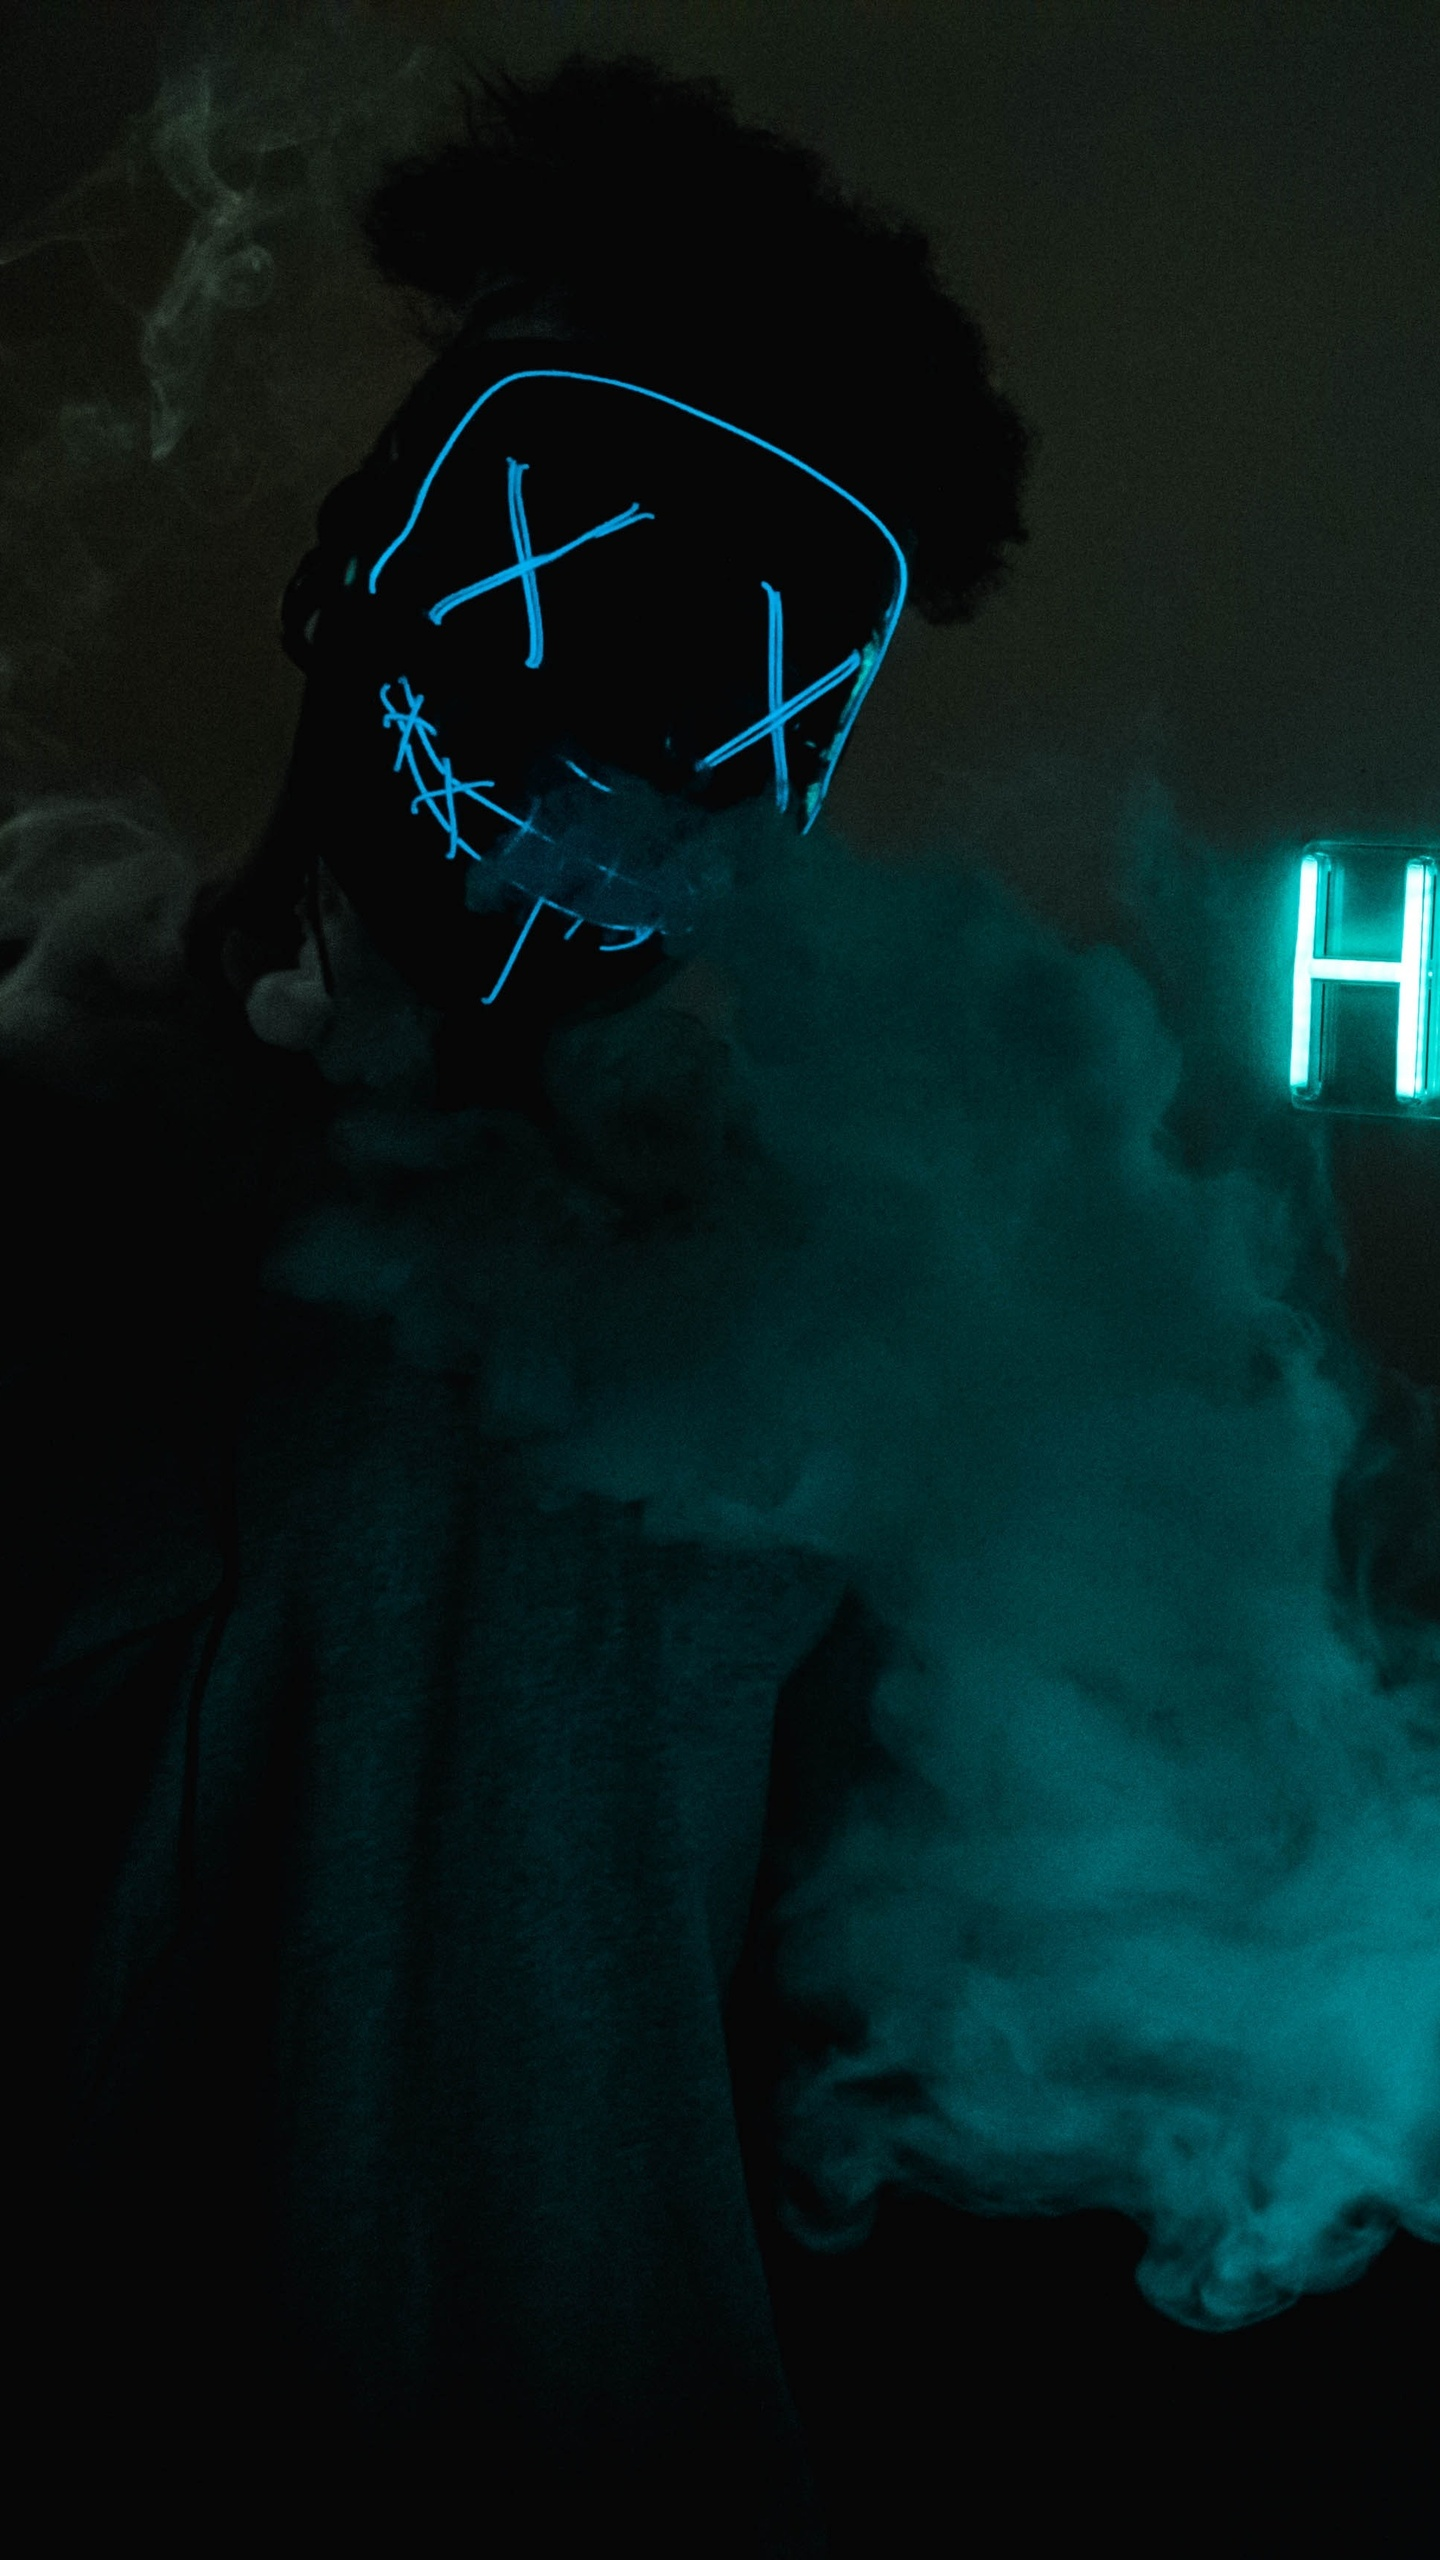 1440x2560 Mask Guy Hustle Neon Concept 5k Samsung Galaxy S6 S7 Google Pixel Xl Nexus 6 6p Lg G5 Hd 4k Wallpapers Images Backgrounds Photos And Pictures